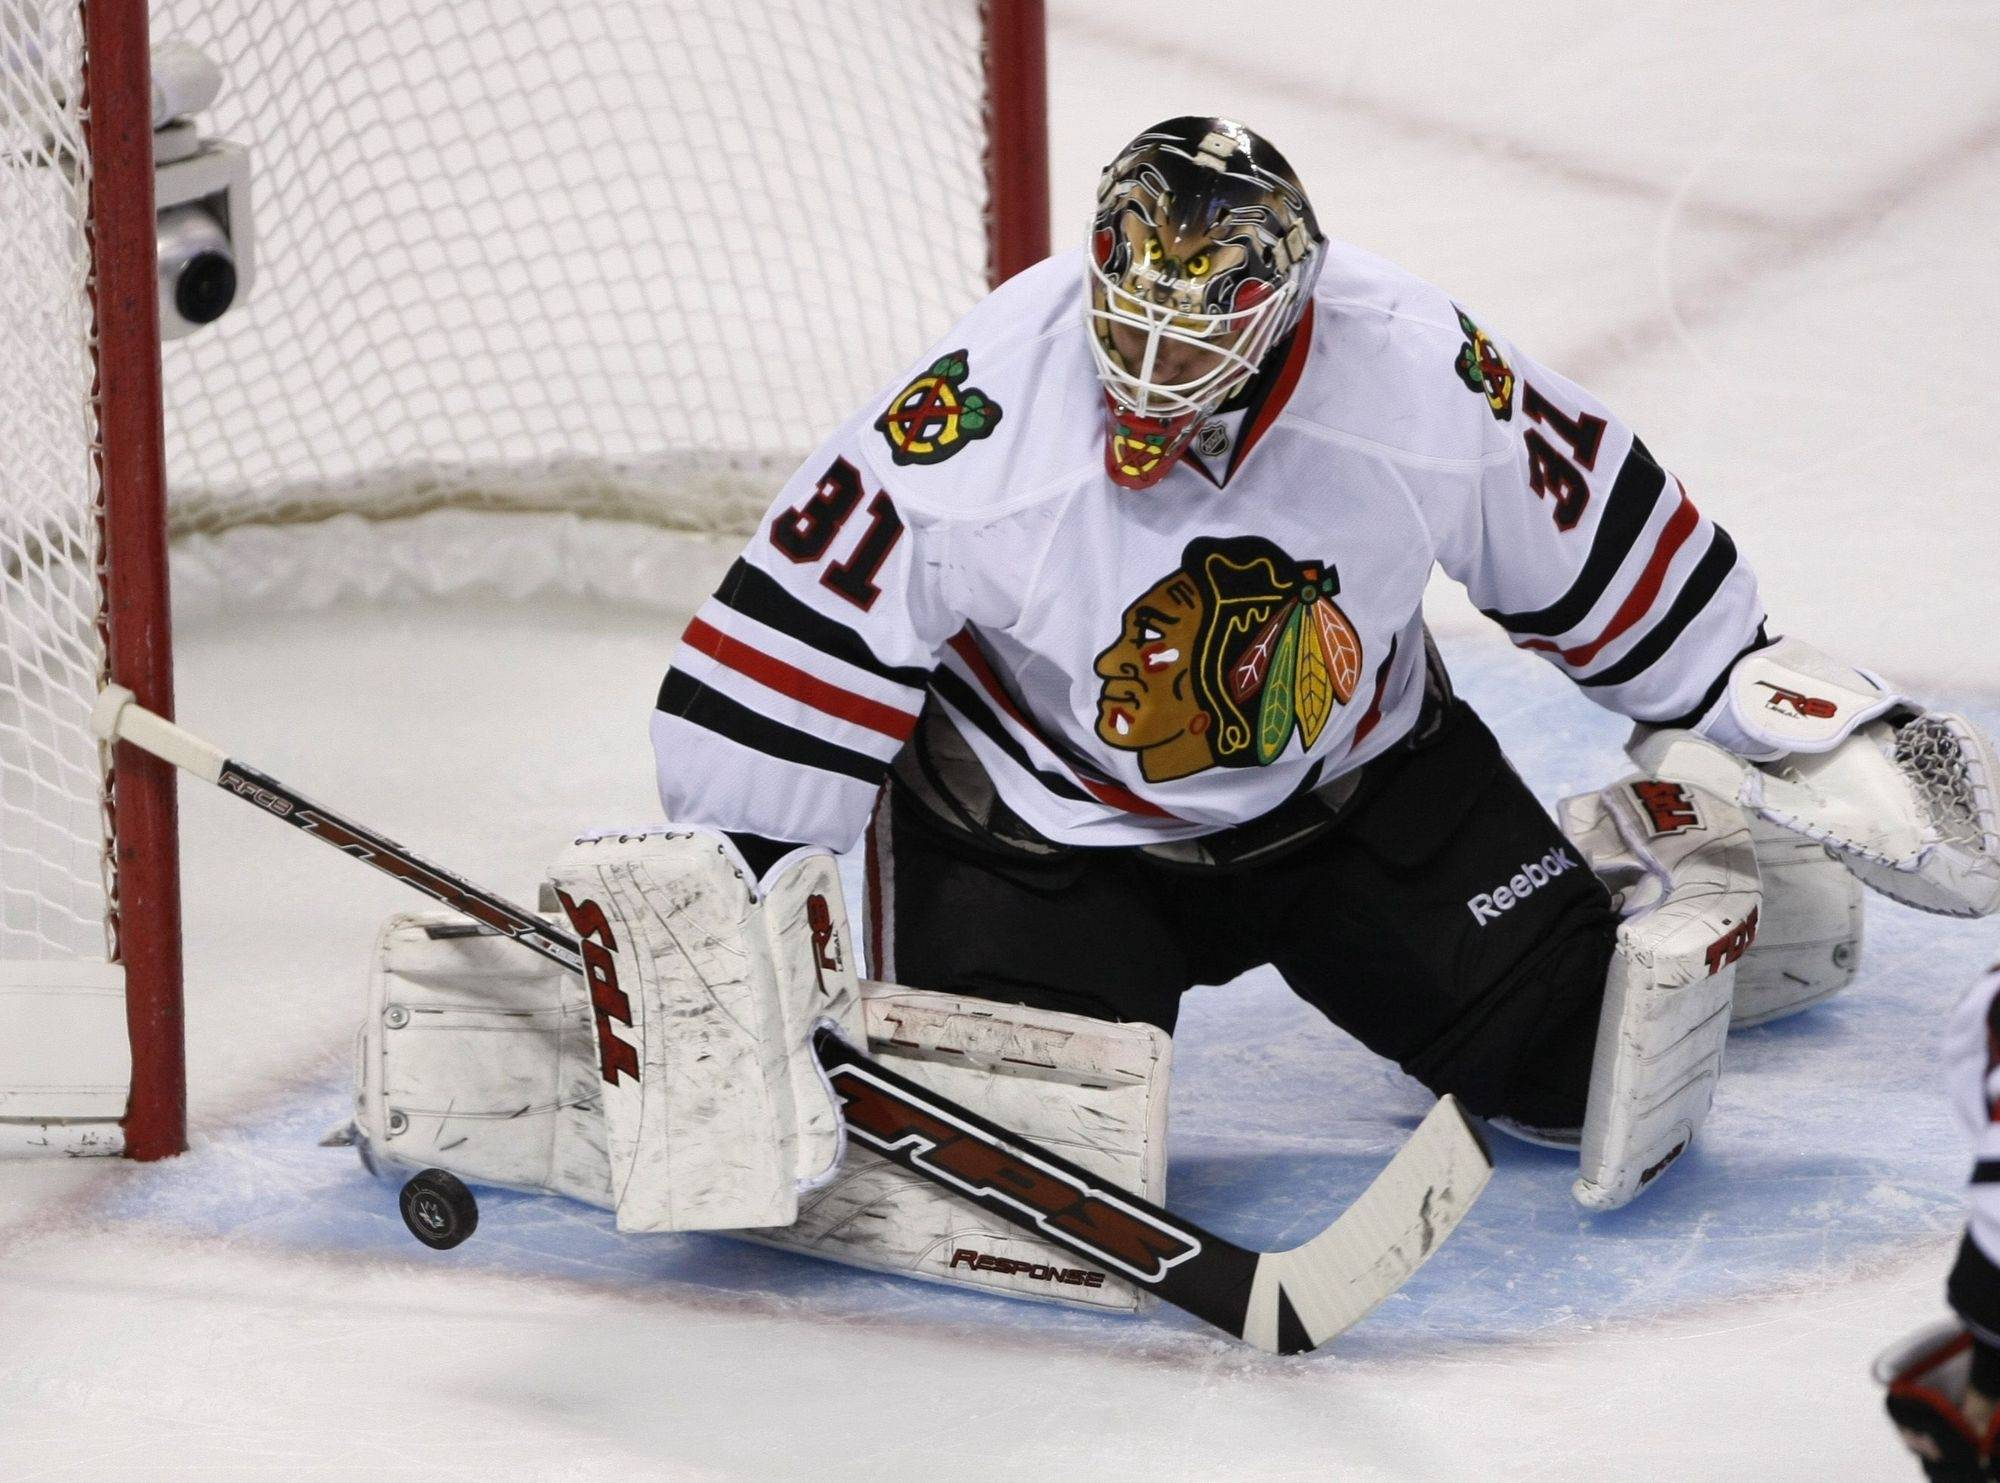 Chicago Blackhawks goalie Antti Niemi blocks a shot by a San Jose Sharks player during the first period.